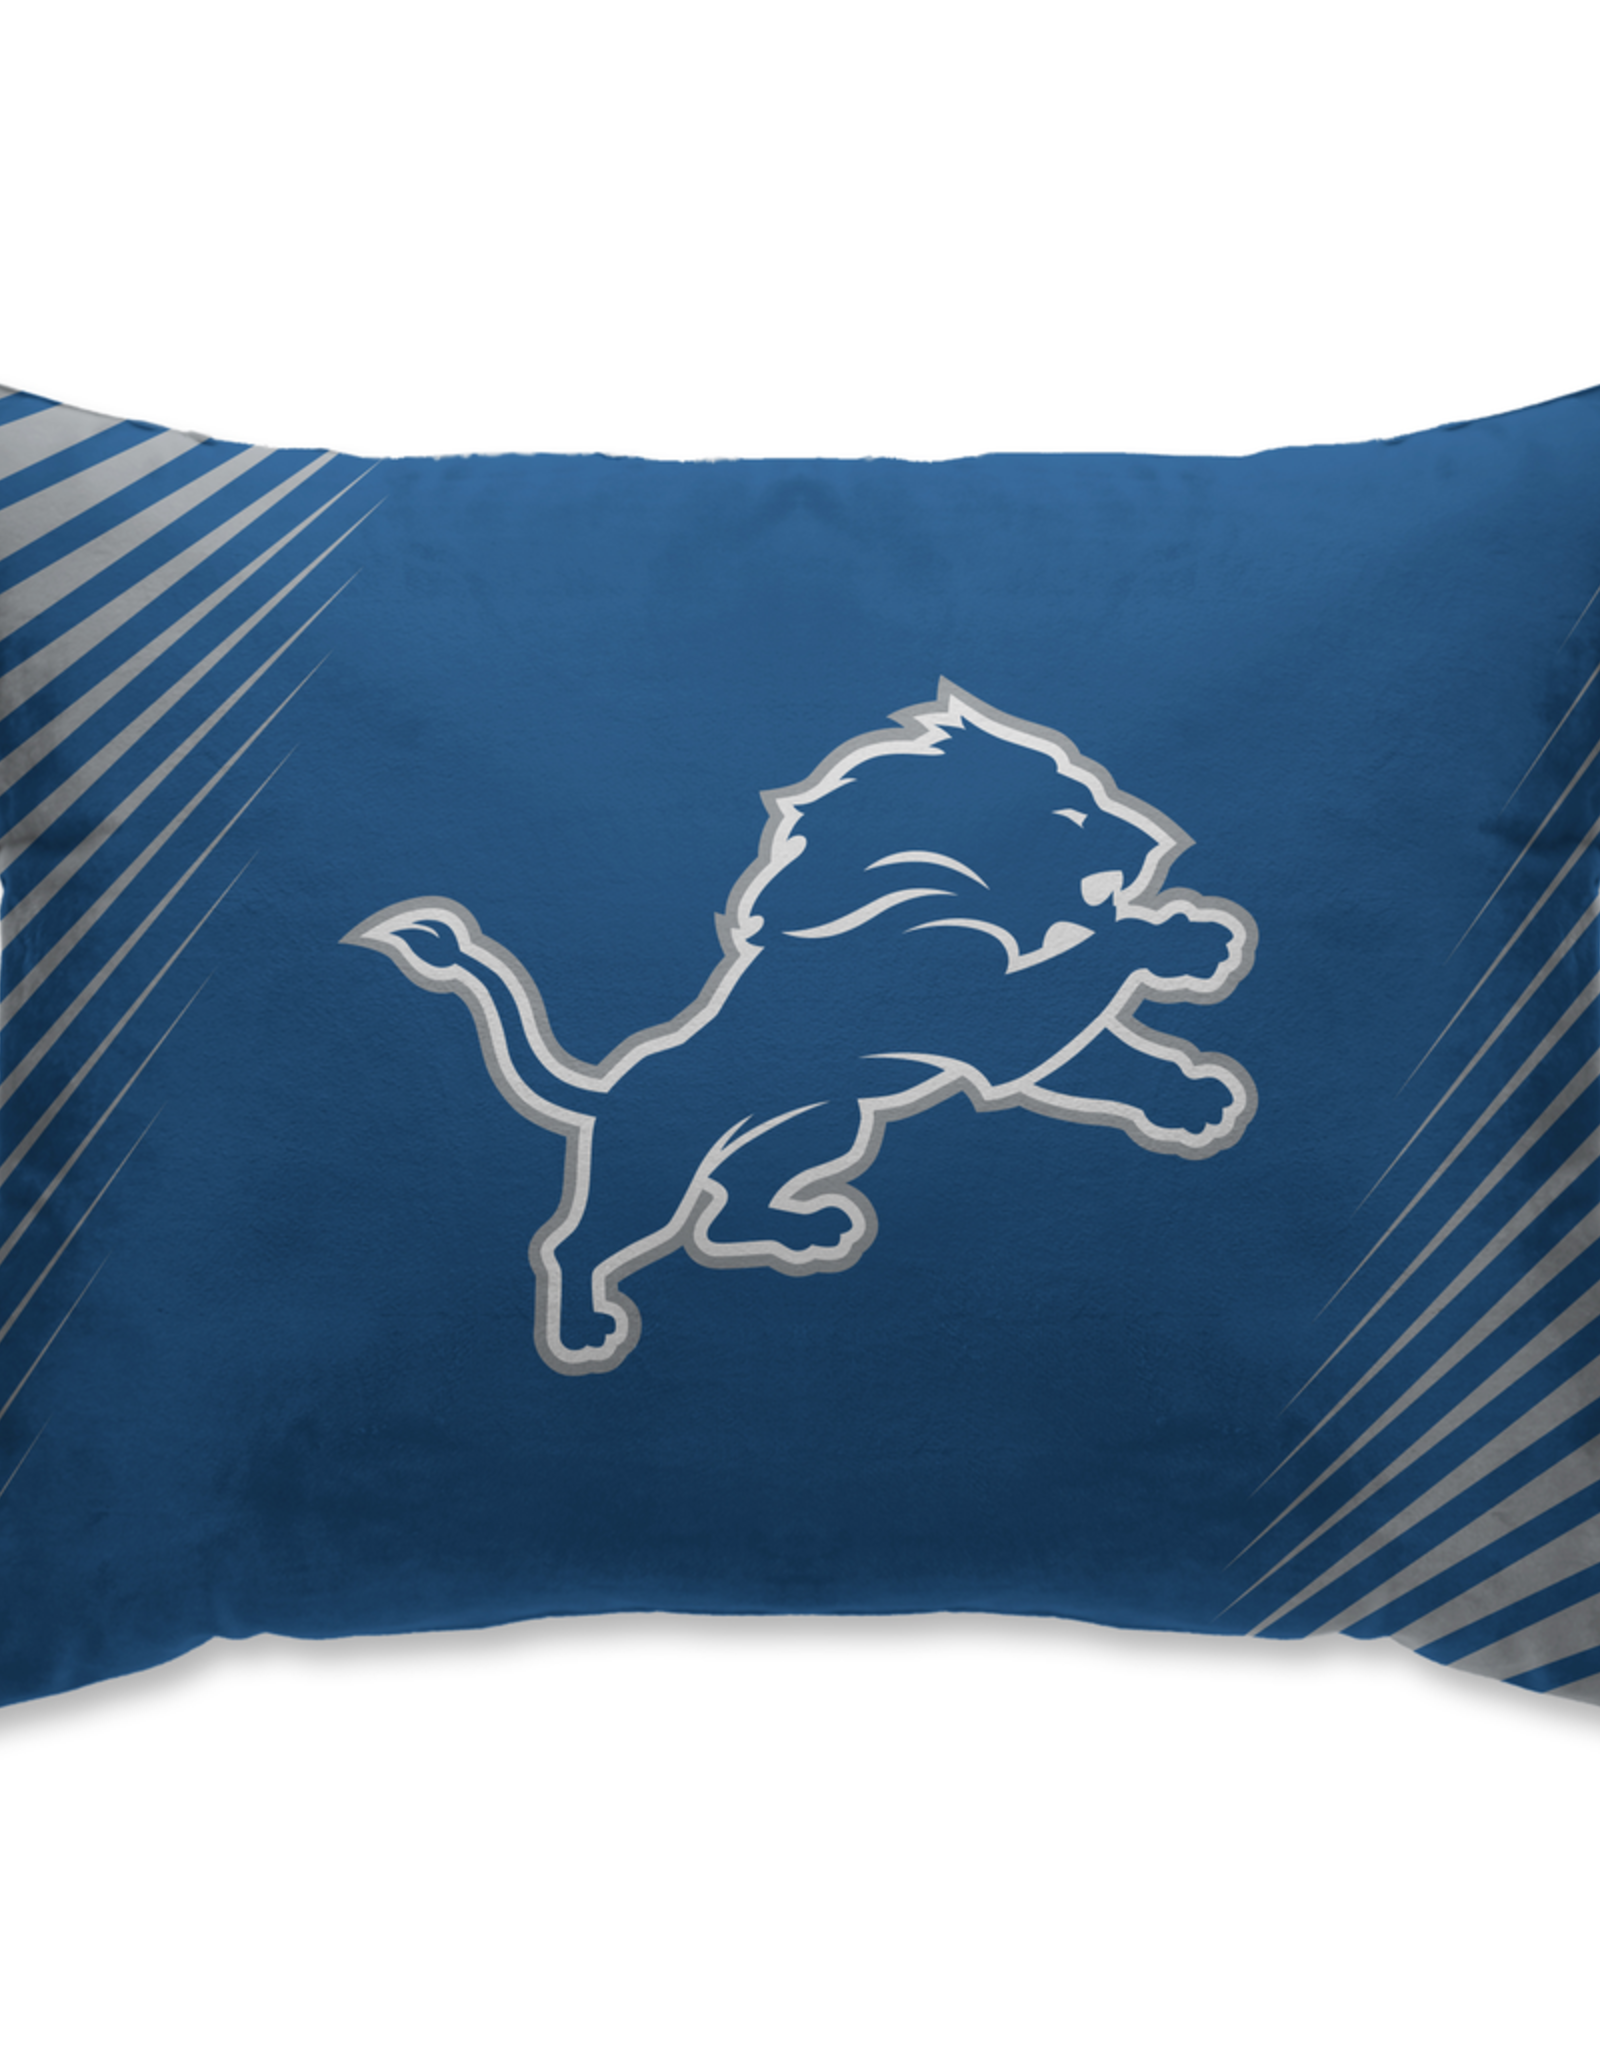 HOVER HELMETS Detriot Lions Side Streak Microplush Pillow Protector